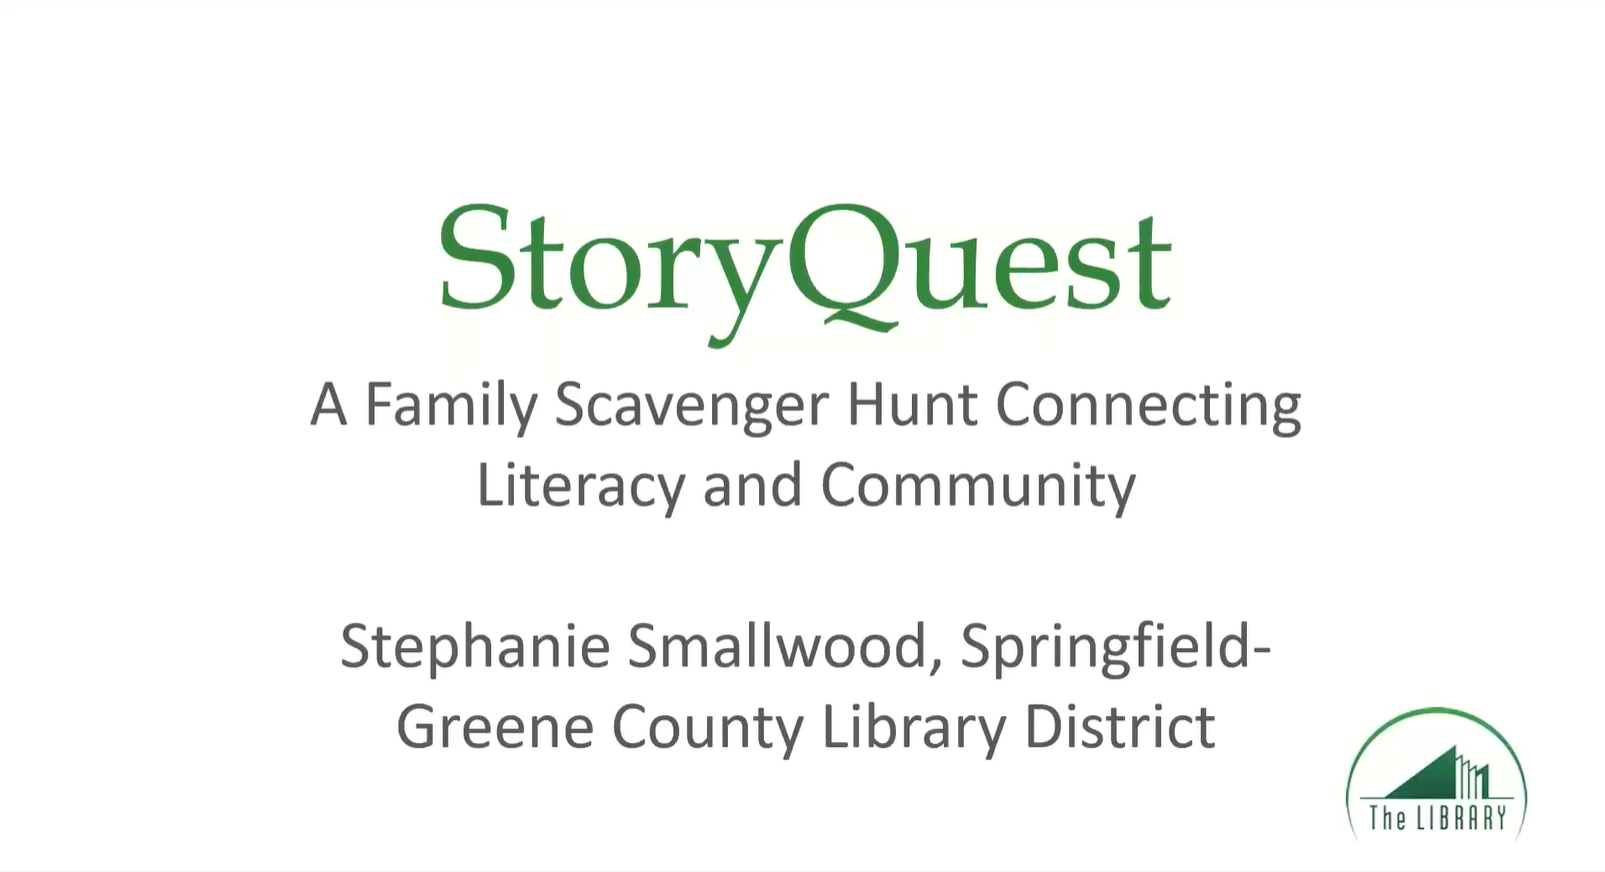 StoryQuest Image